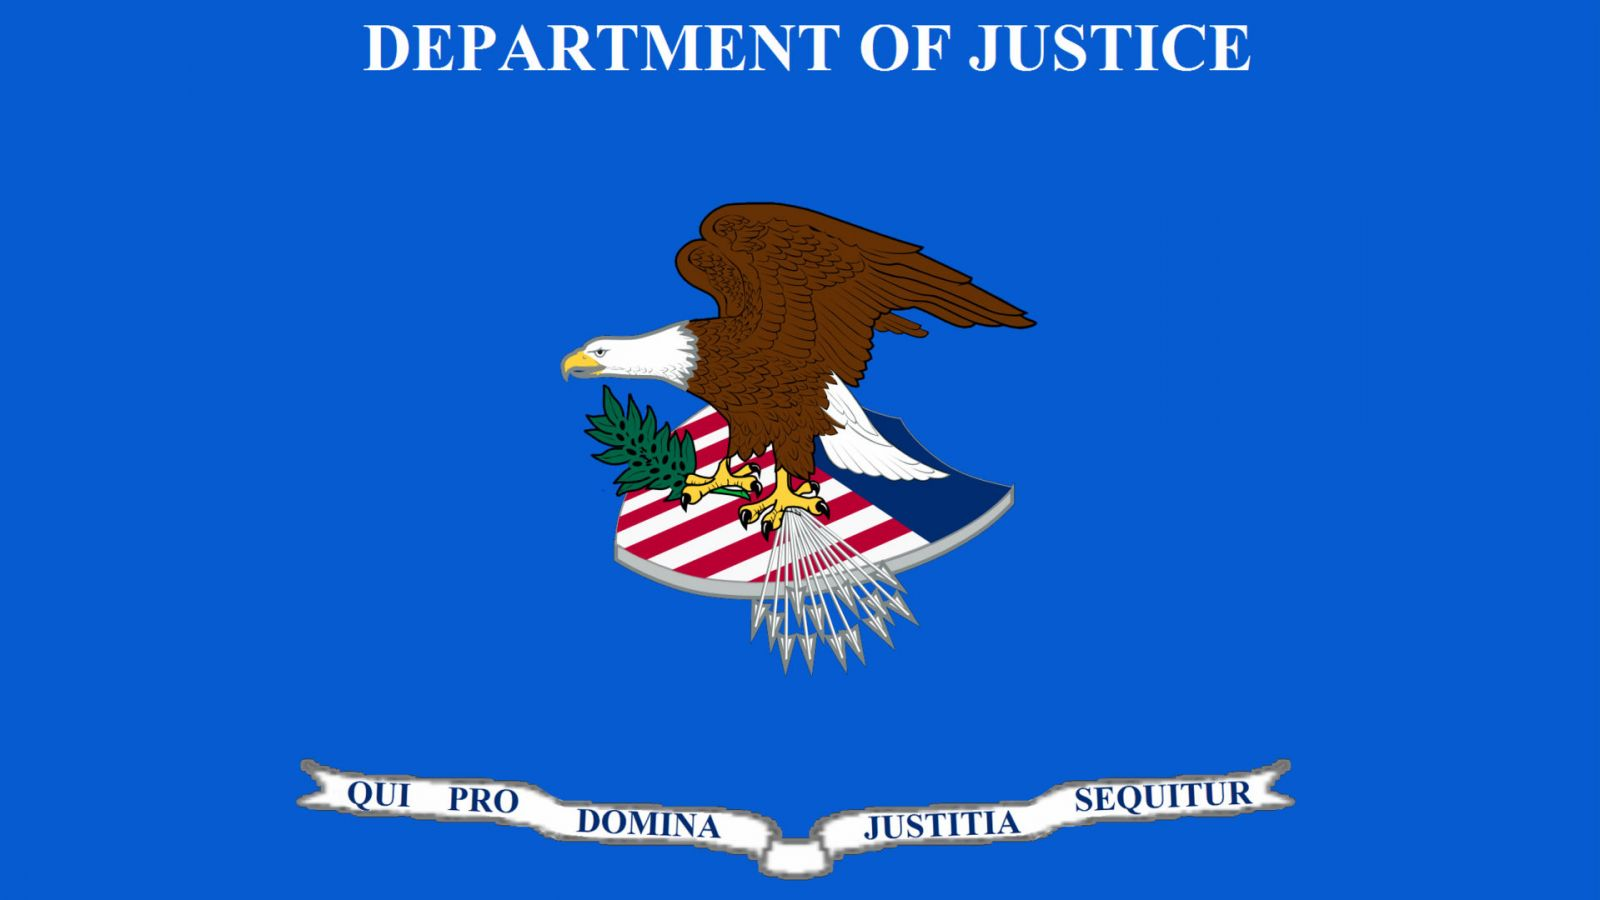 Department of Justice flag